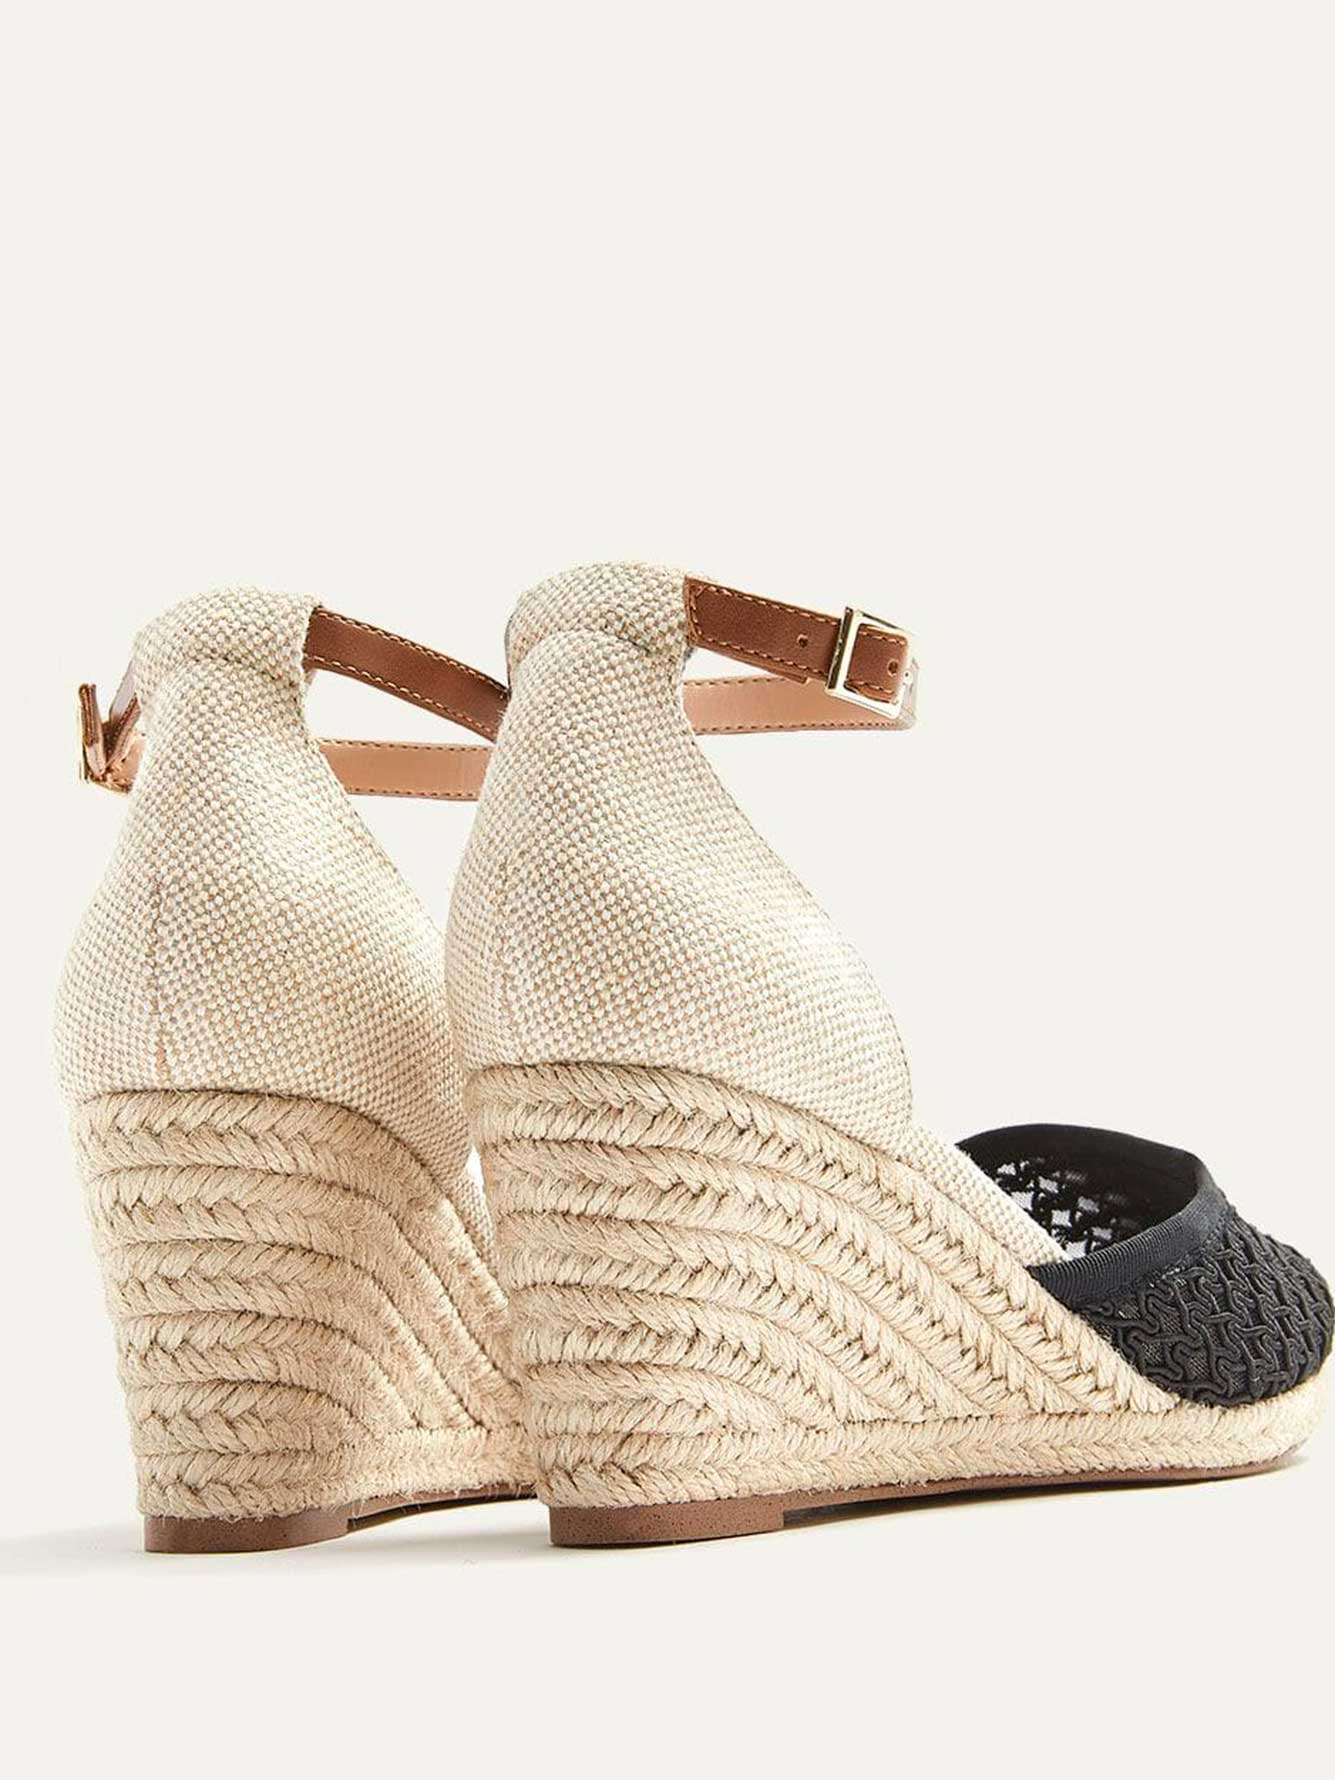 Wide Wedge Shoes with Lace Toe